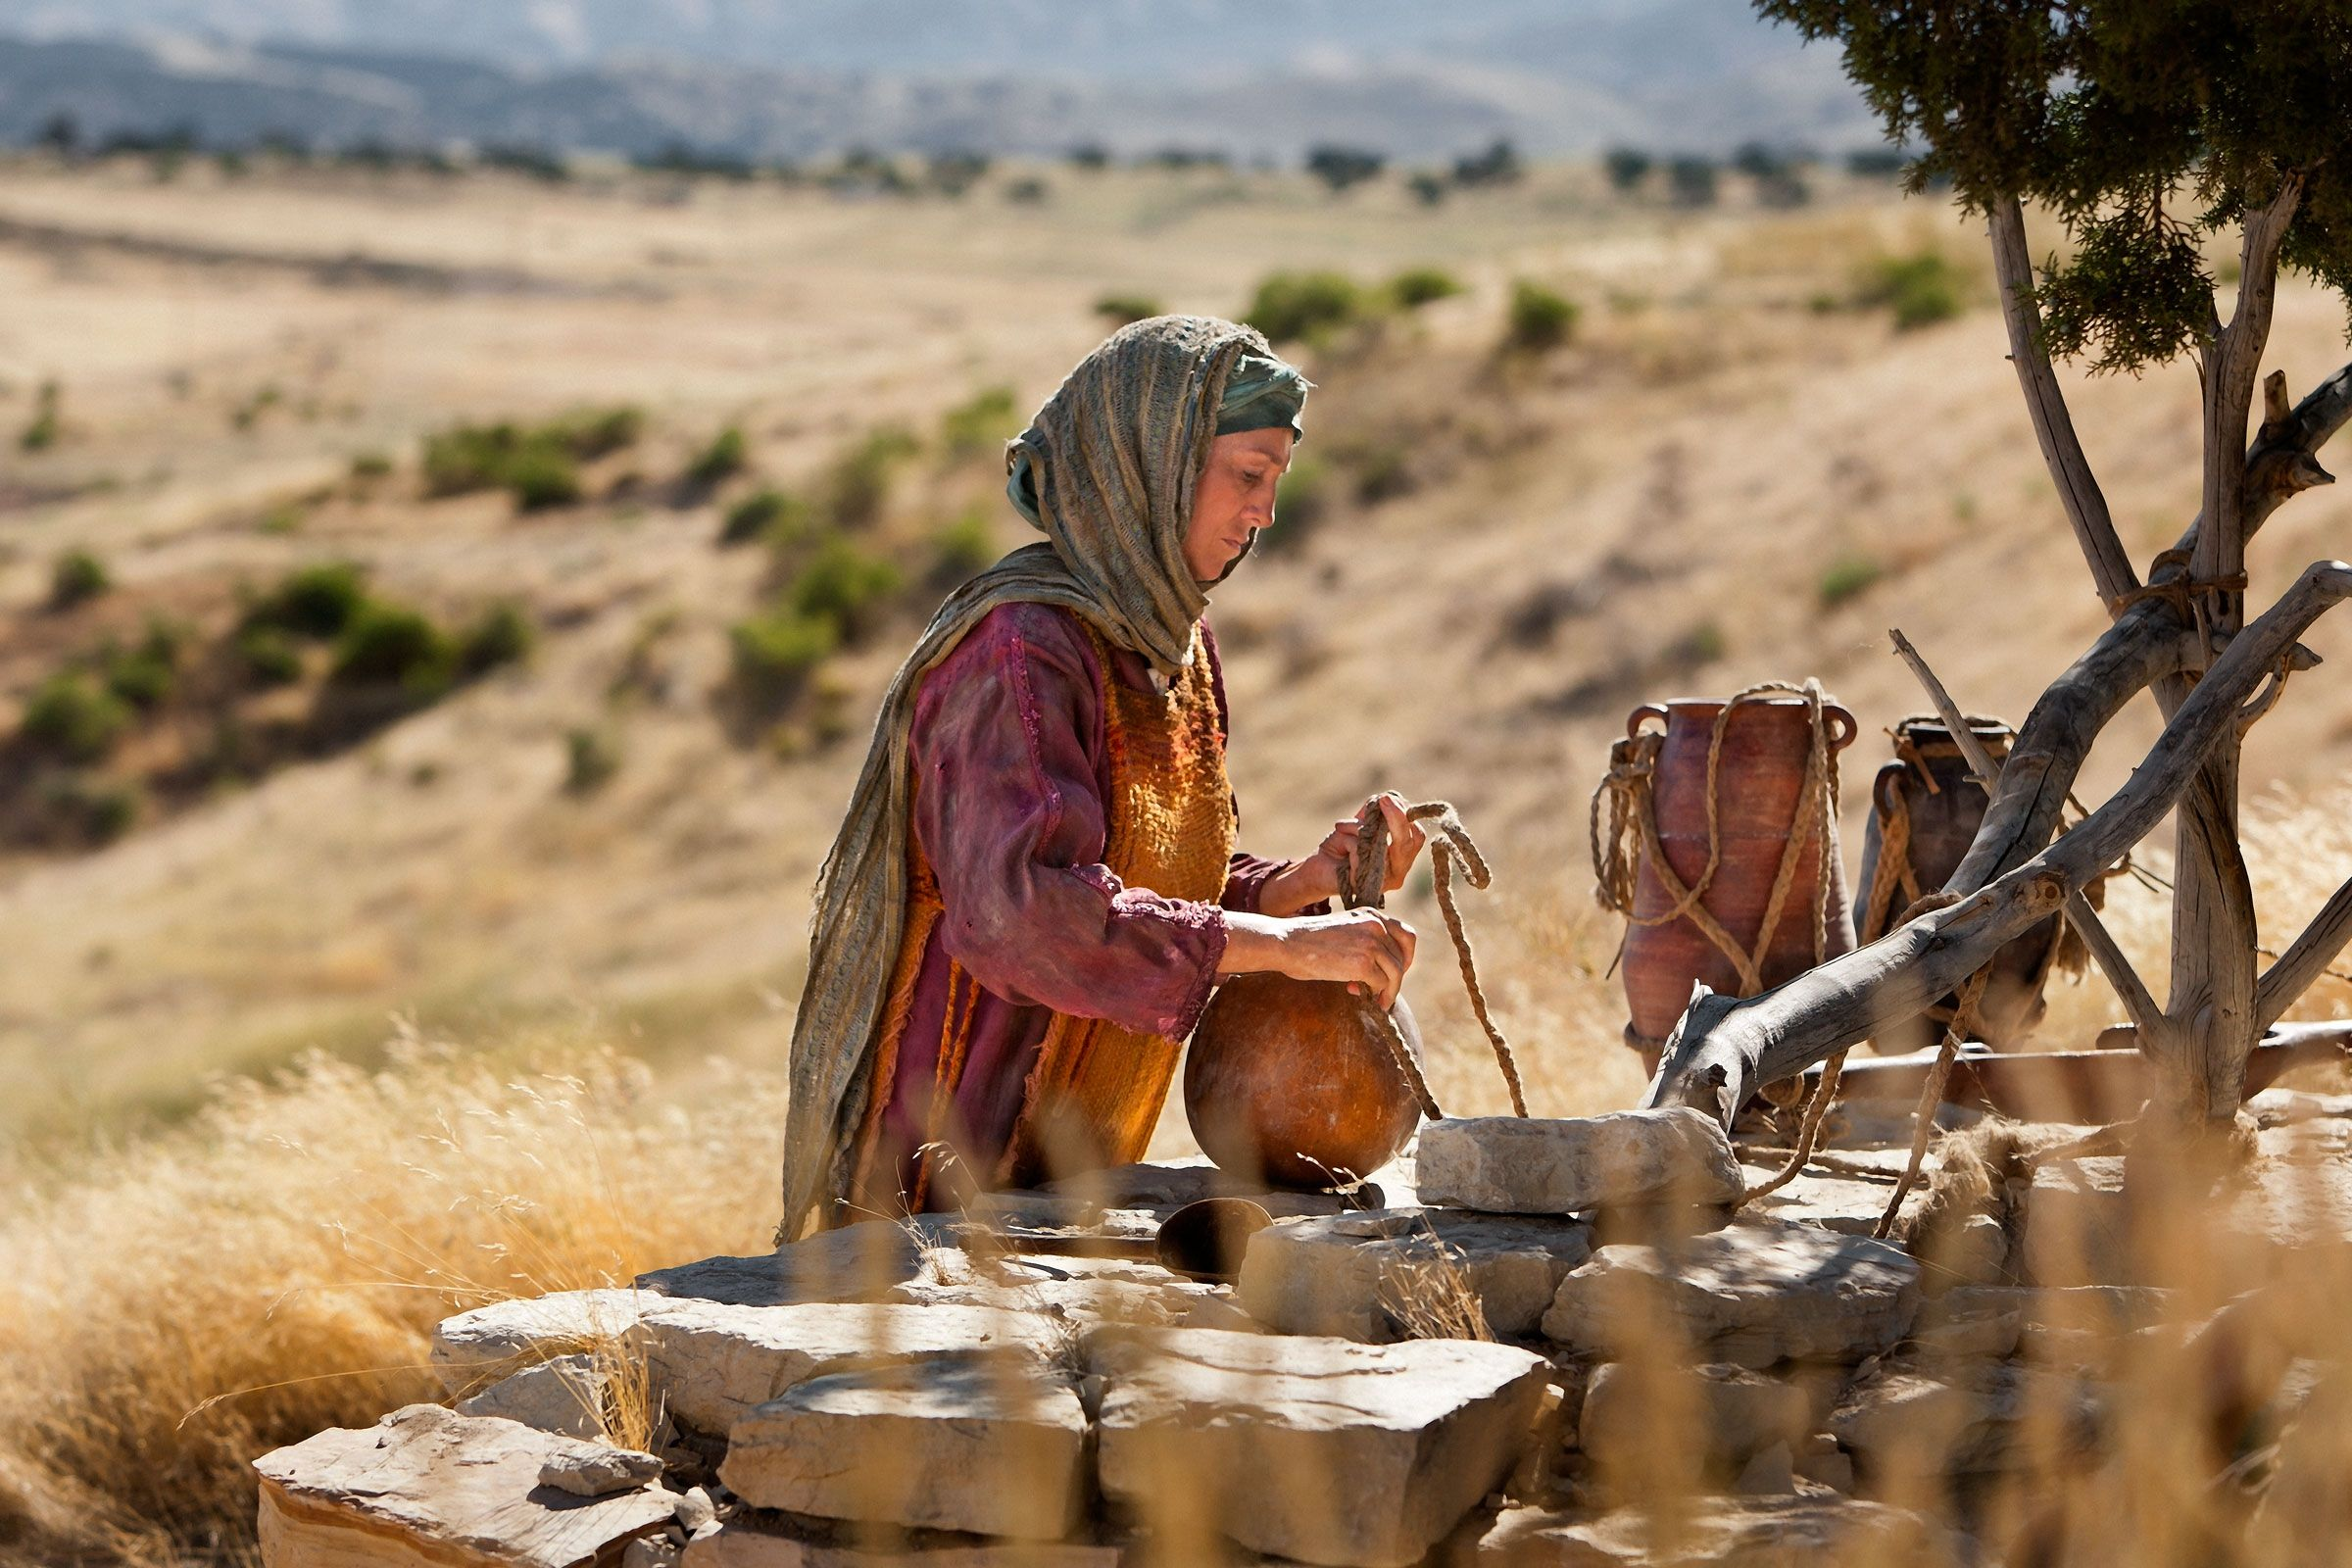 A woman of Samaria questions Jesus for speaking to her.